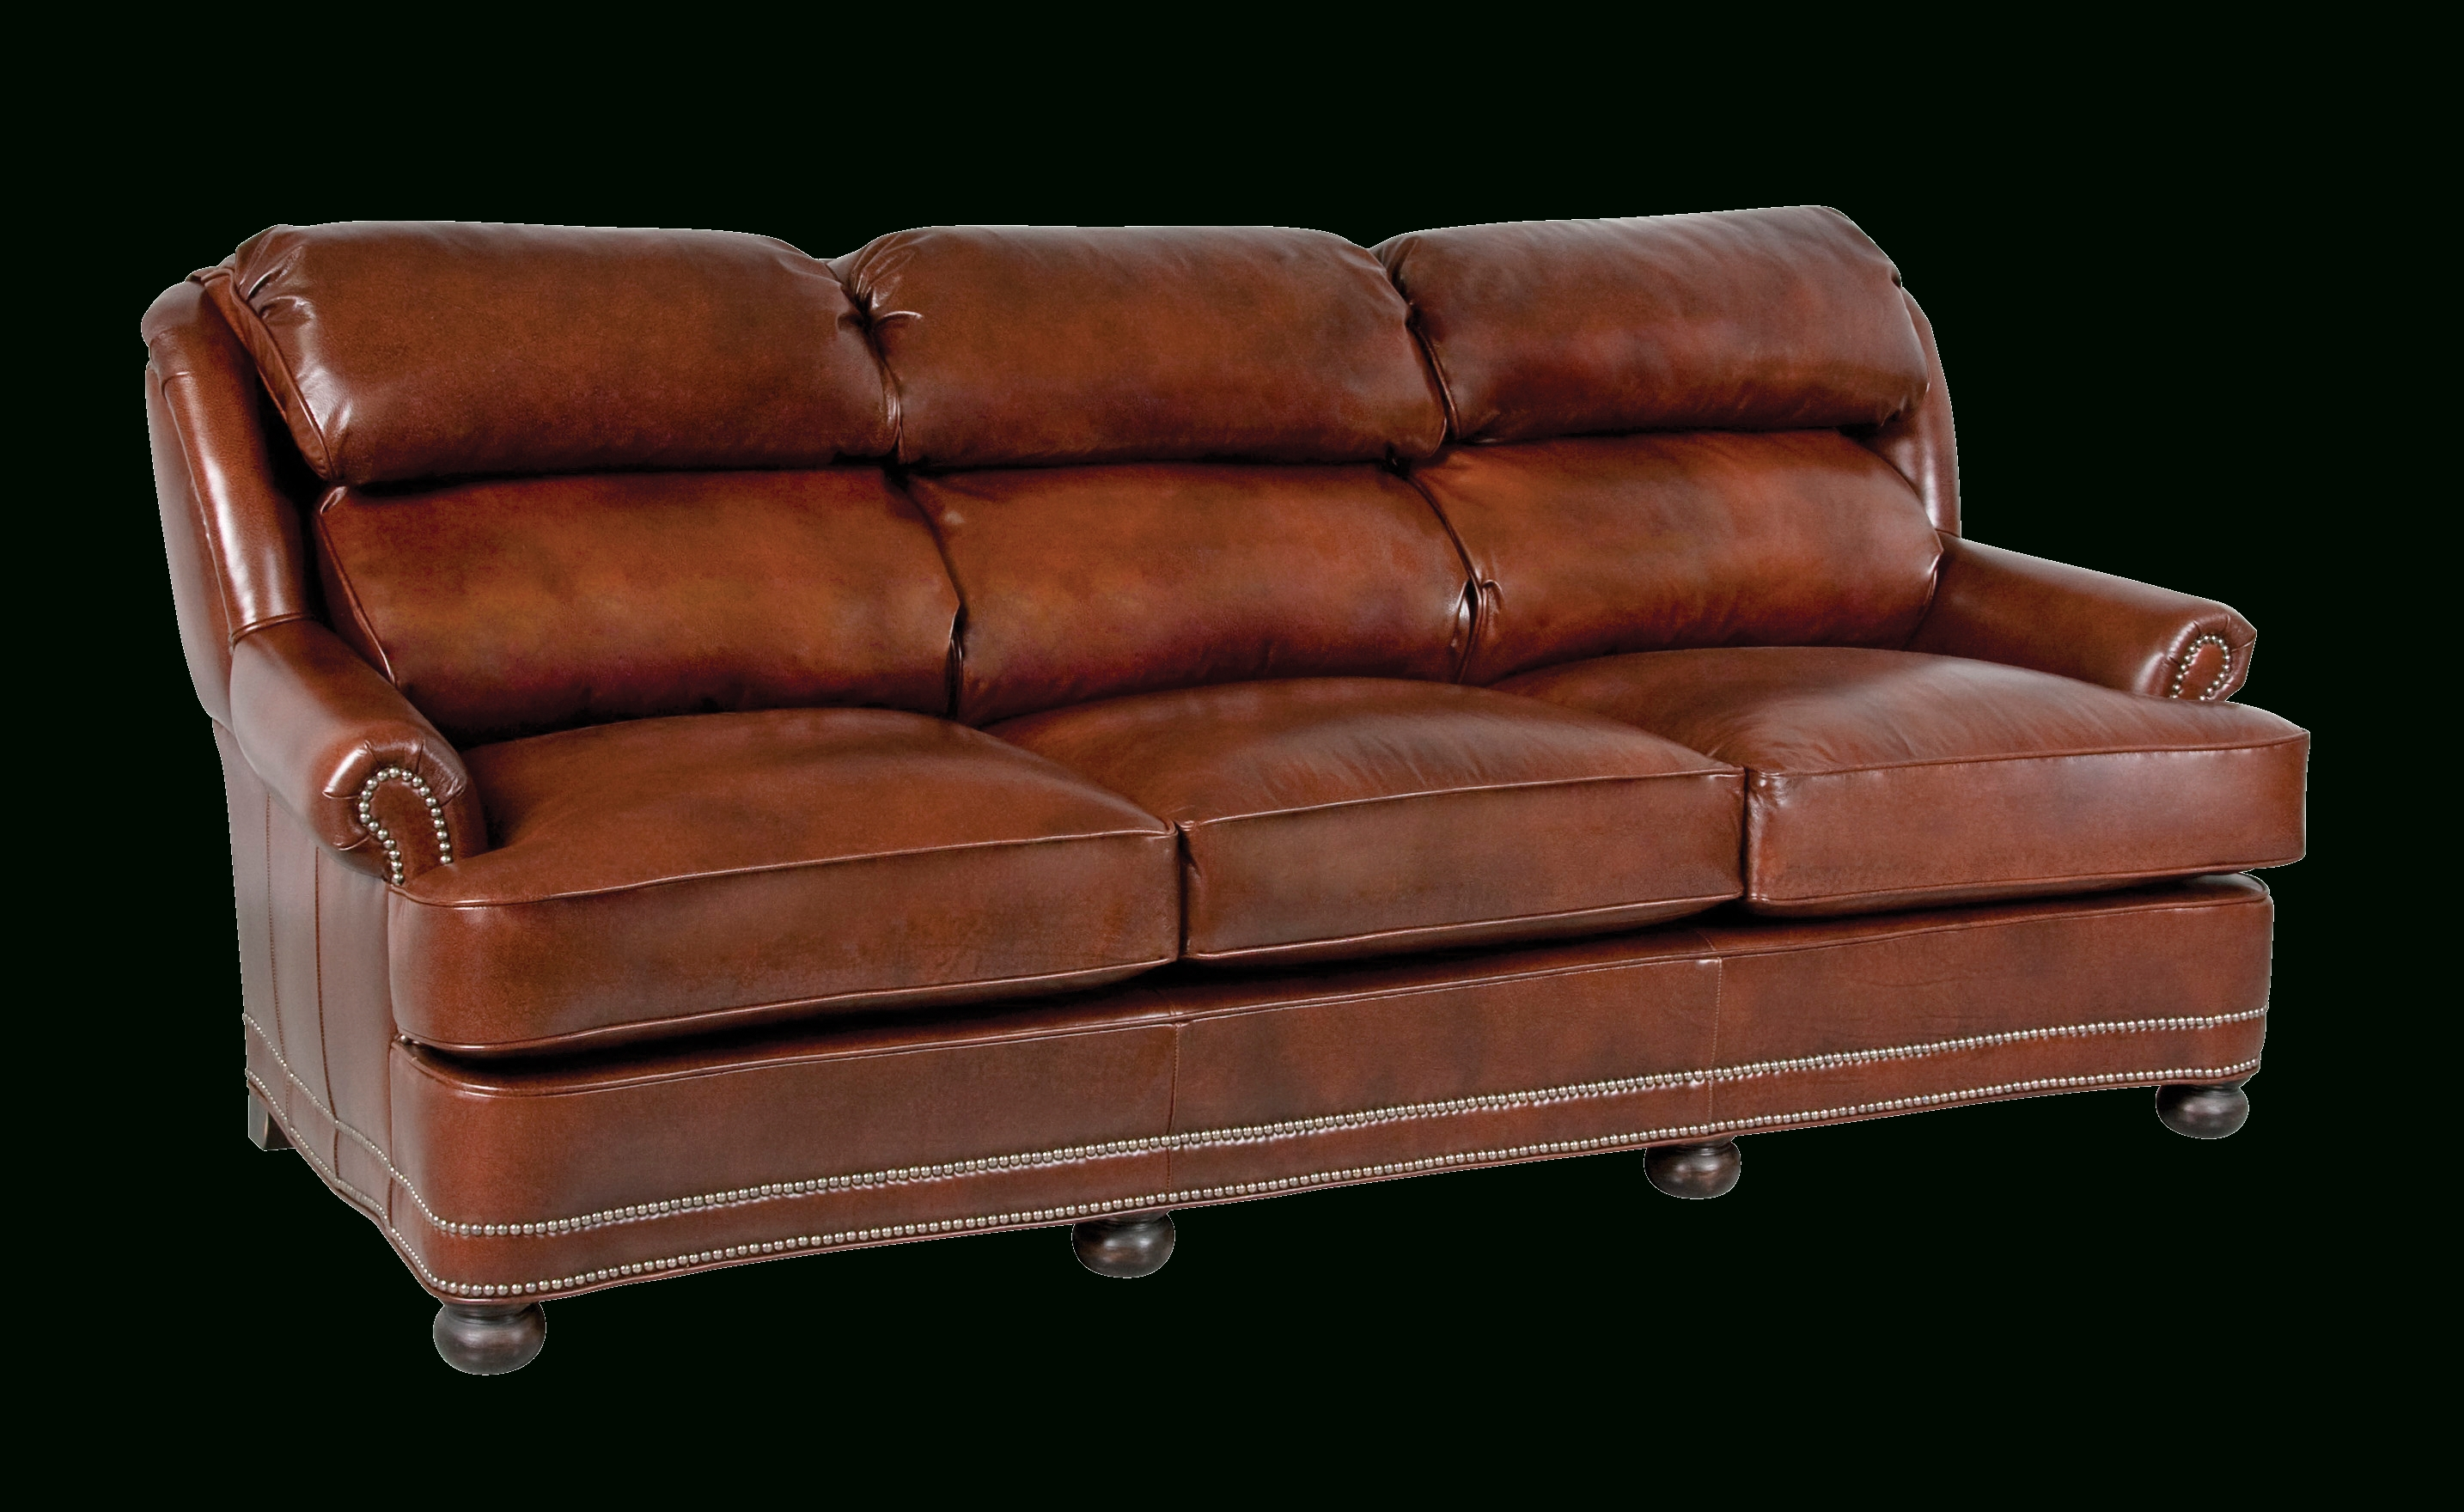 Sofas Center : Hamilton Leather Sofa Bassett On Craigslist Gallery throughout Craigslist Leather Sofa (Image 26 of 30)